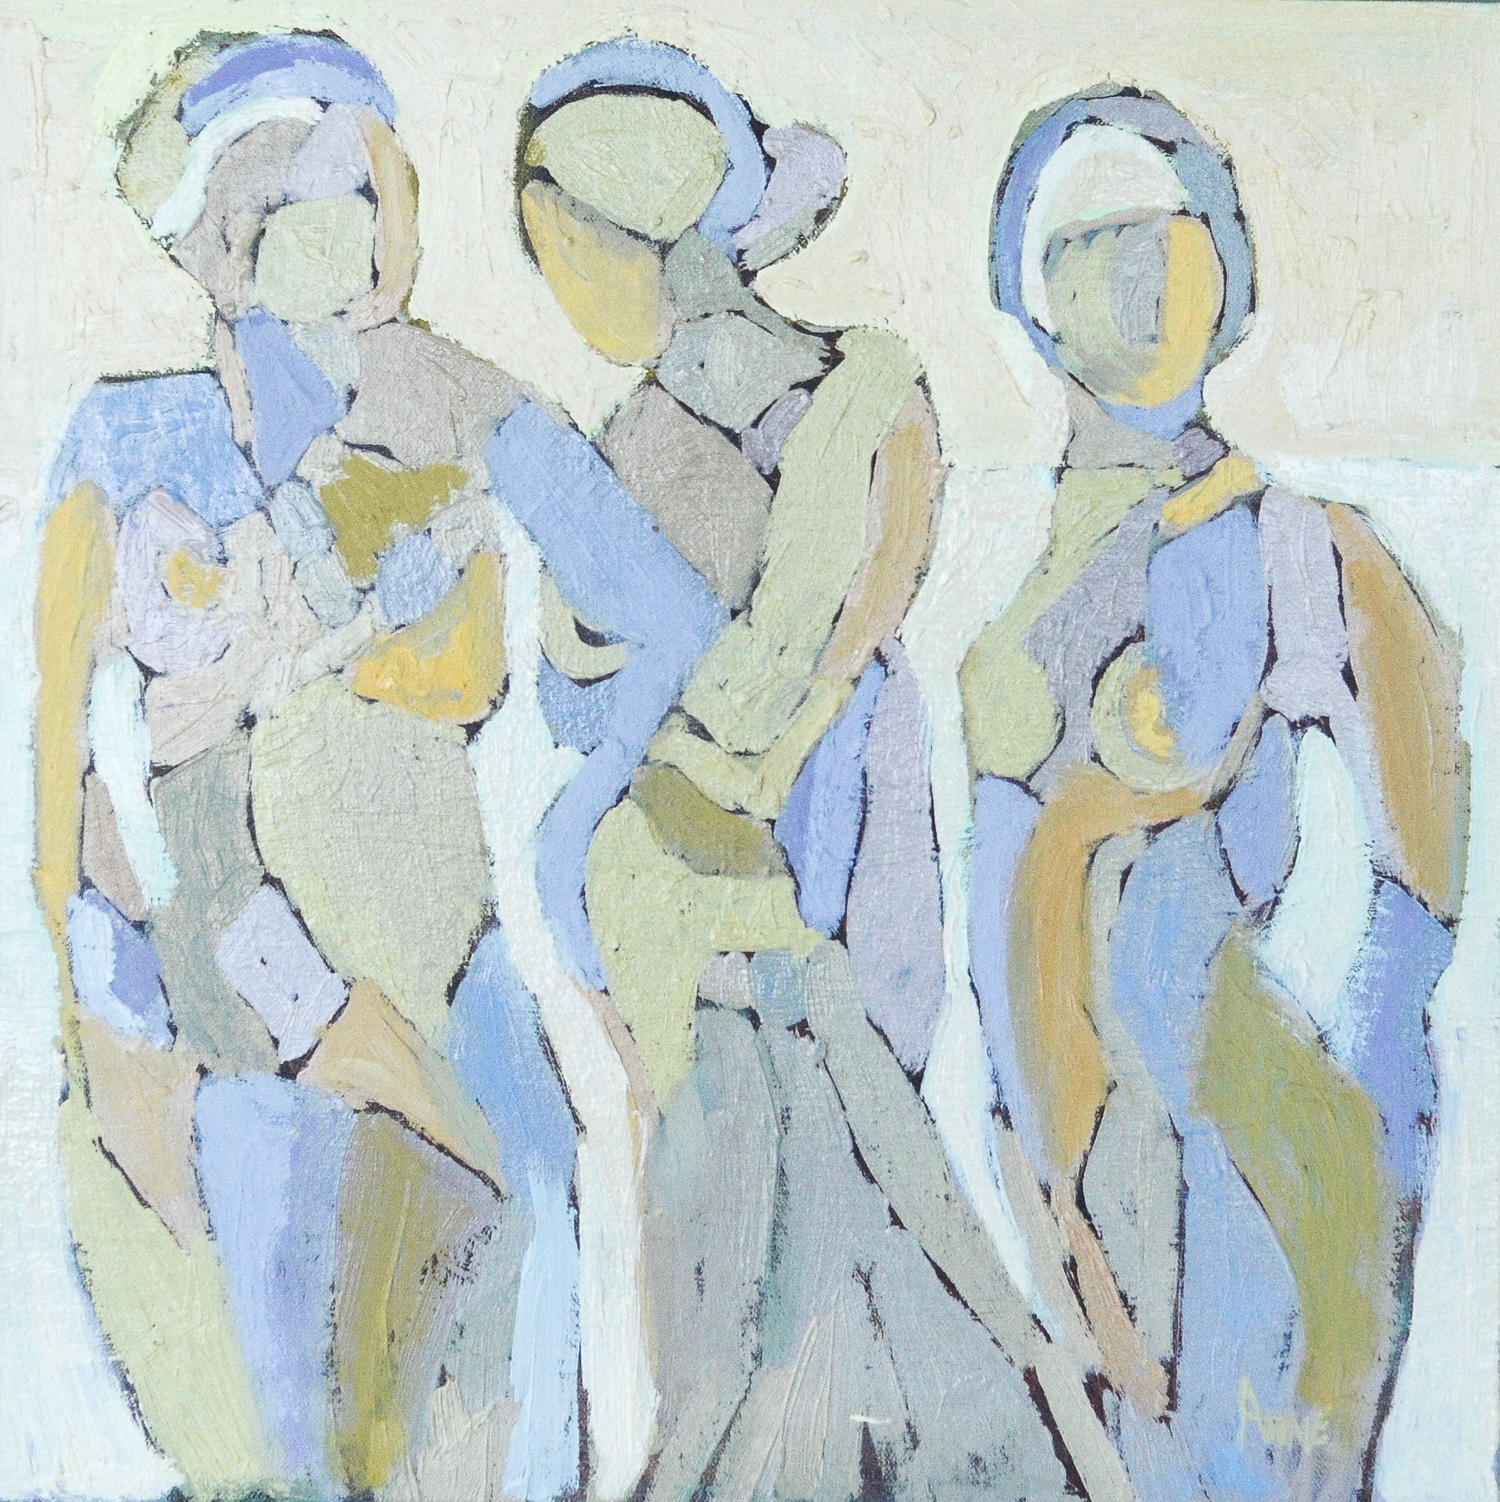 Untitled Figures | Oil on Canvas | 24 x 24""